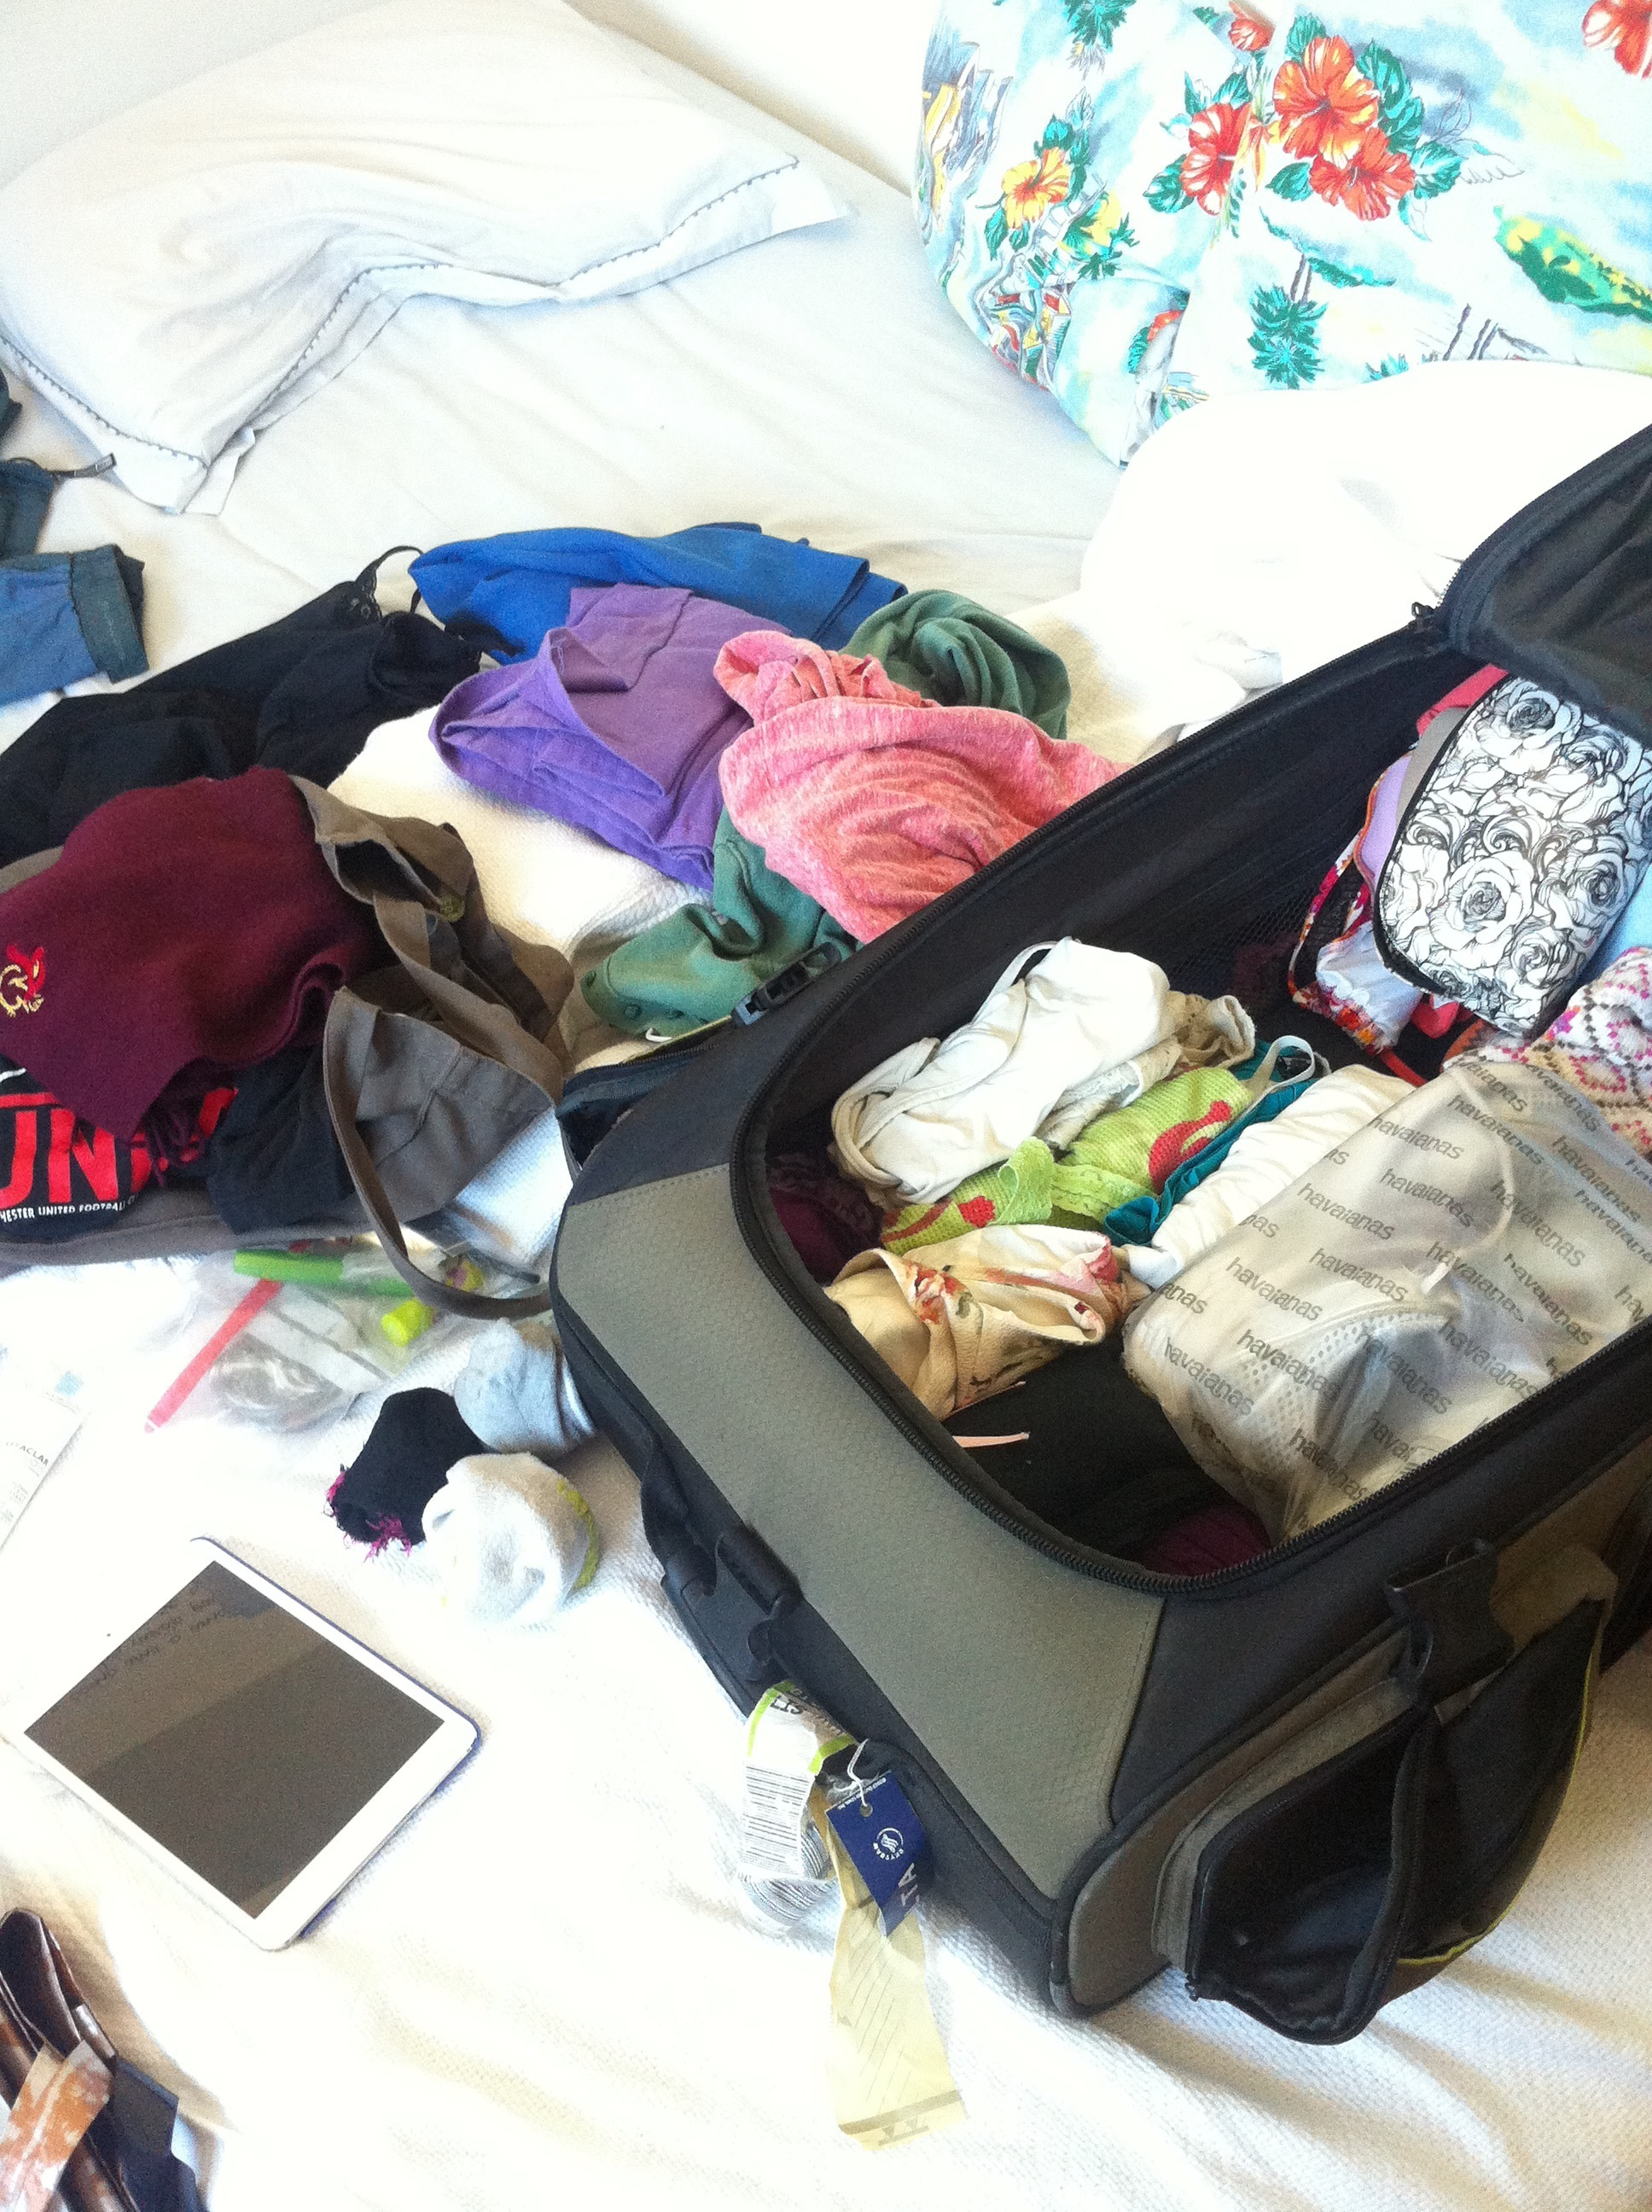 Packing a suitcase.